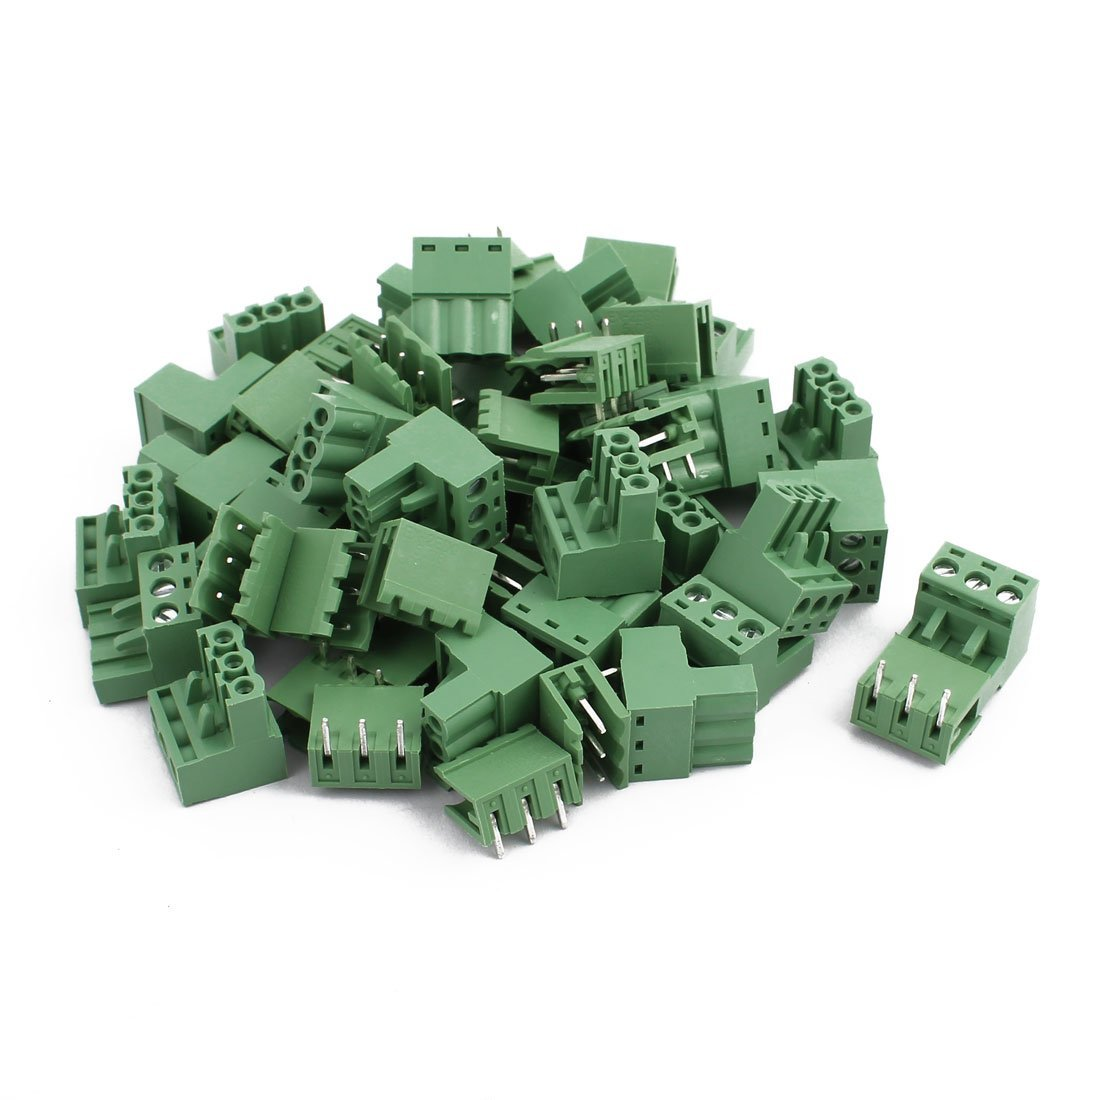 uxcell 28Pairs AC 300V 10A 3 Terminal 5.08mm Spacing PCB Screw Terminal Block Connector